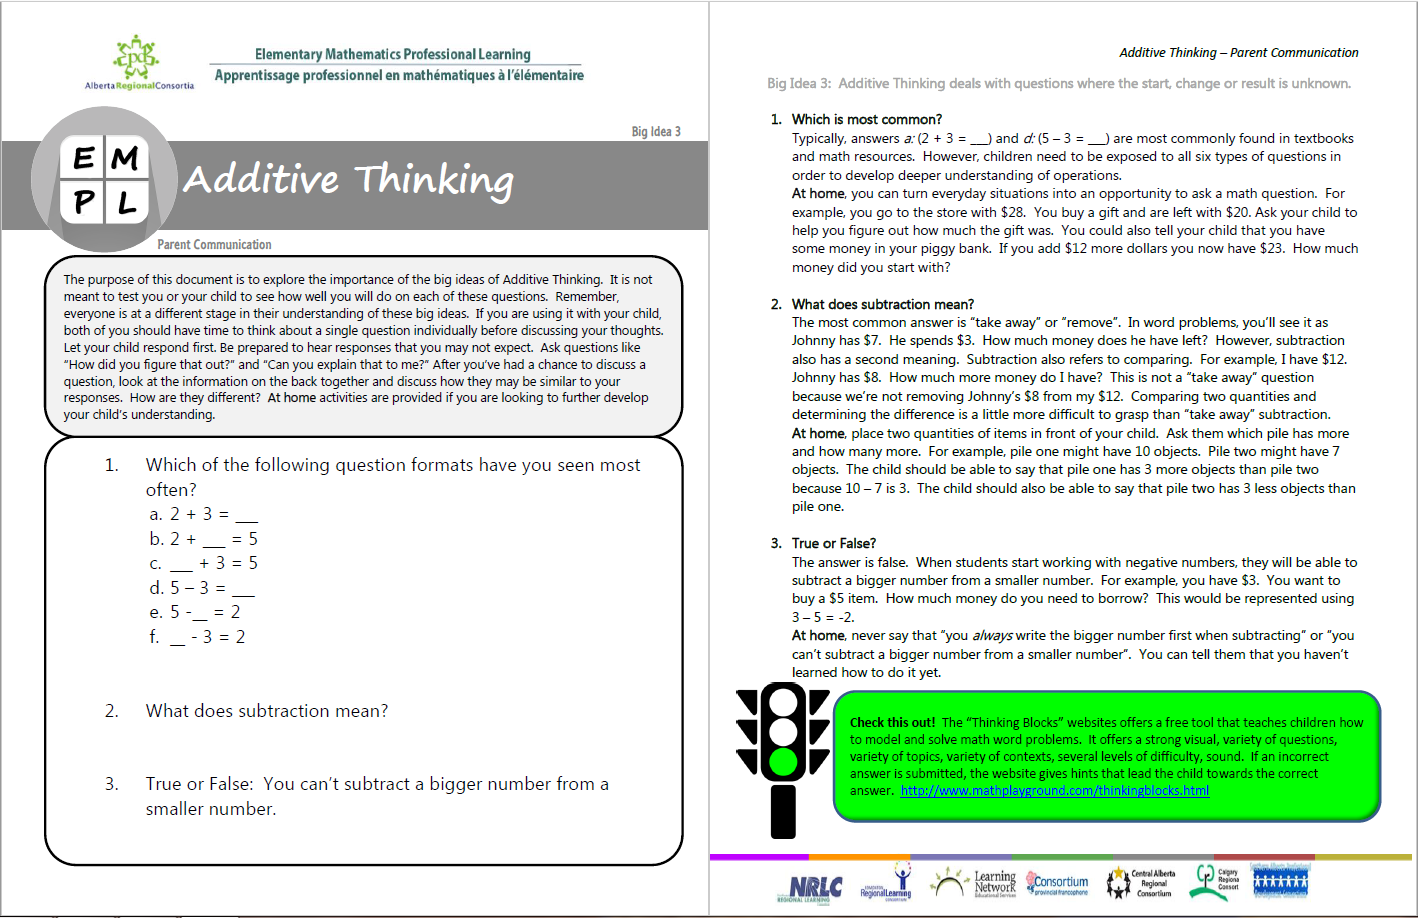 Additive Thinking Big Idea 3